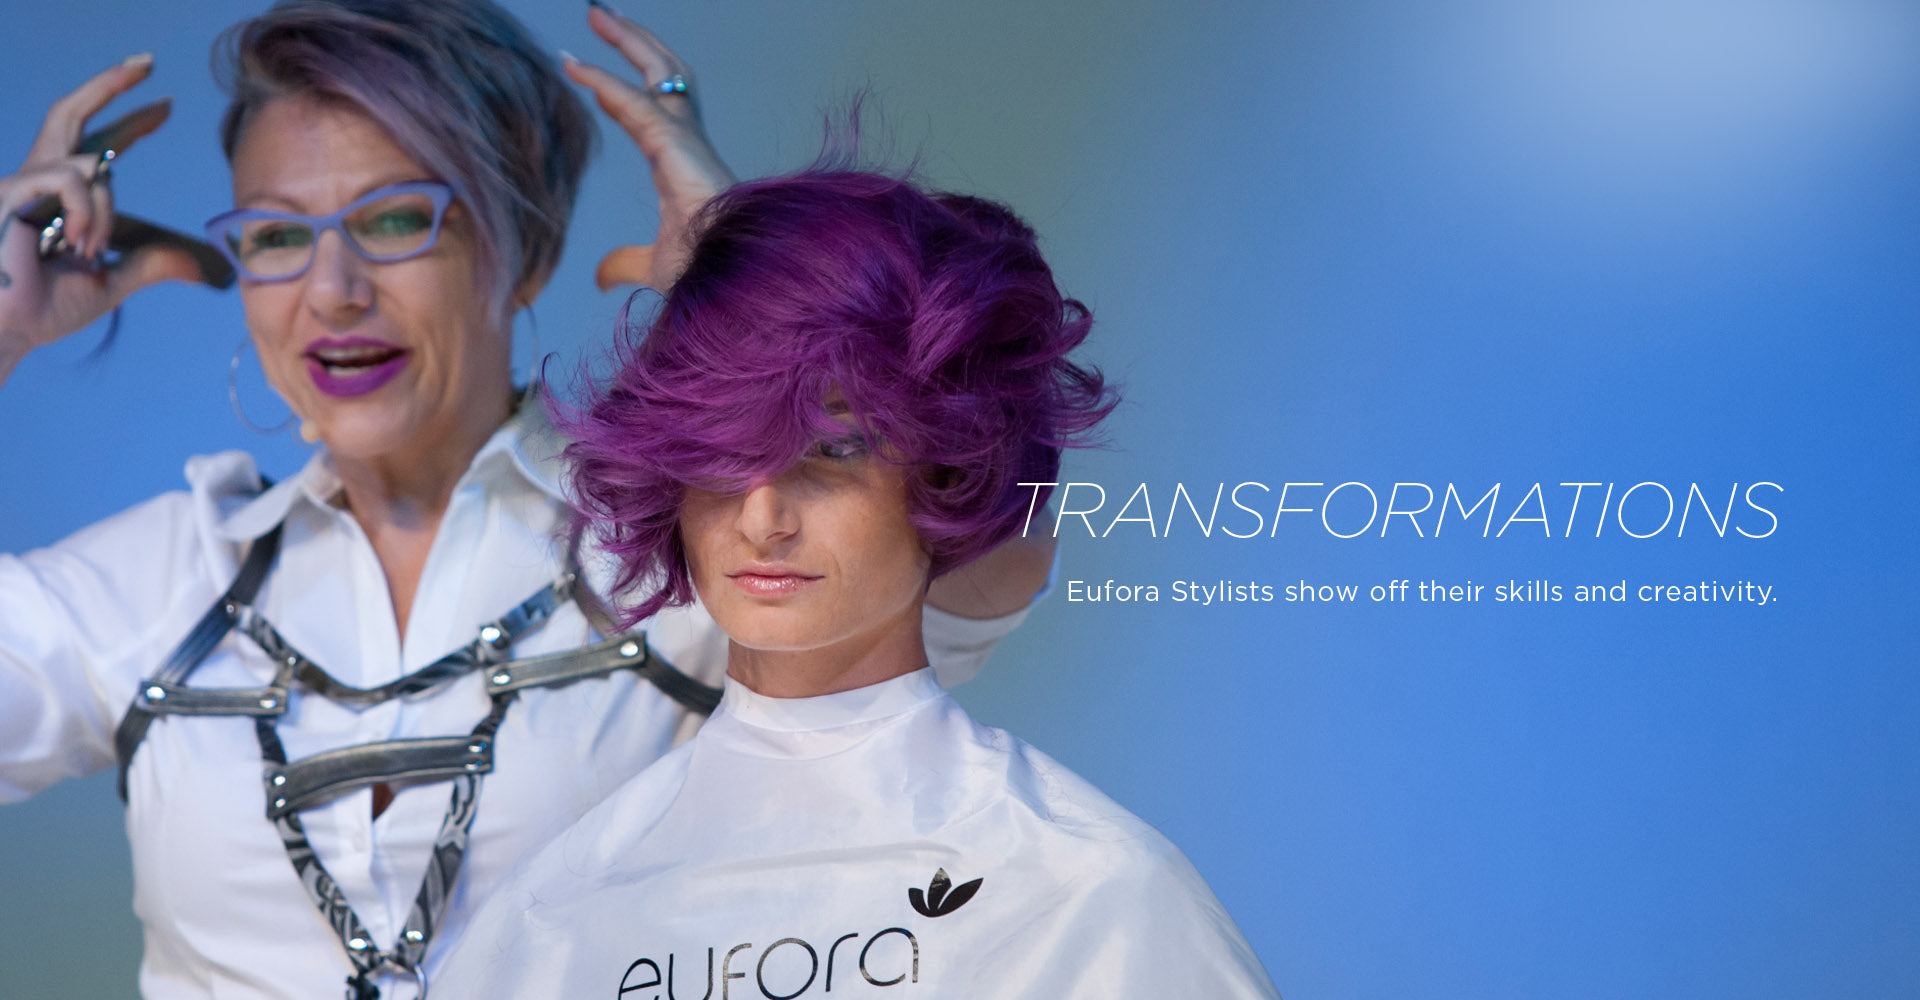 TRANSFORMATIONS - Eufora Stylists show off their skills and creativity